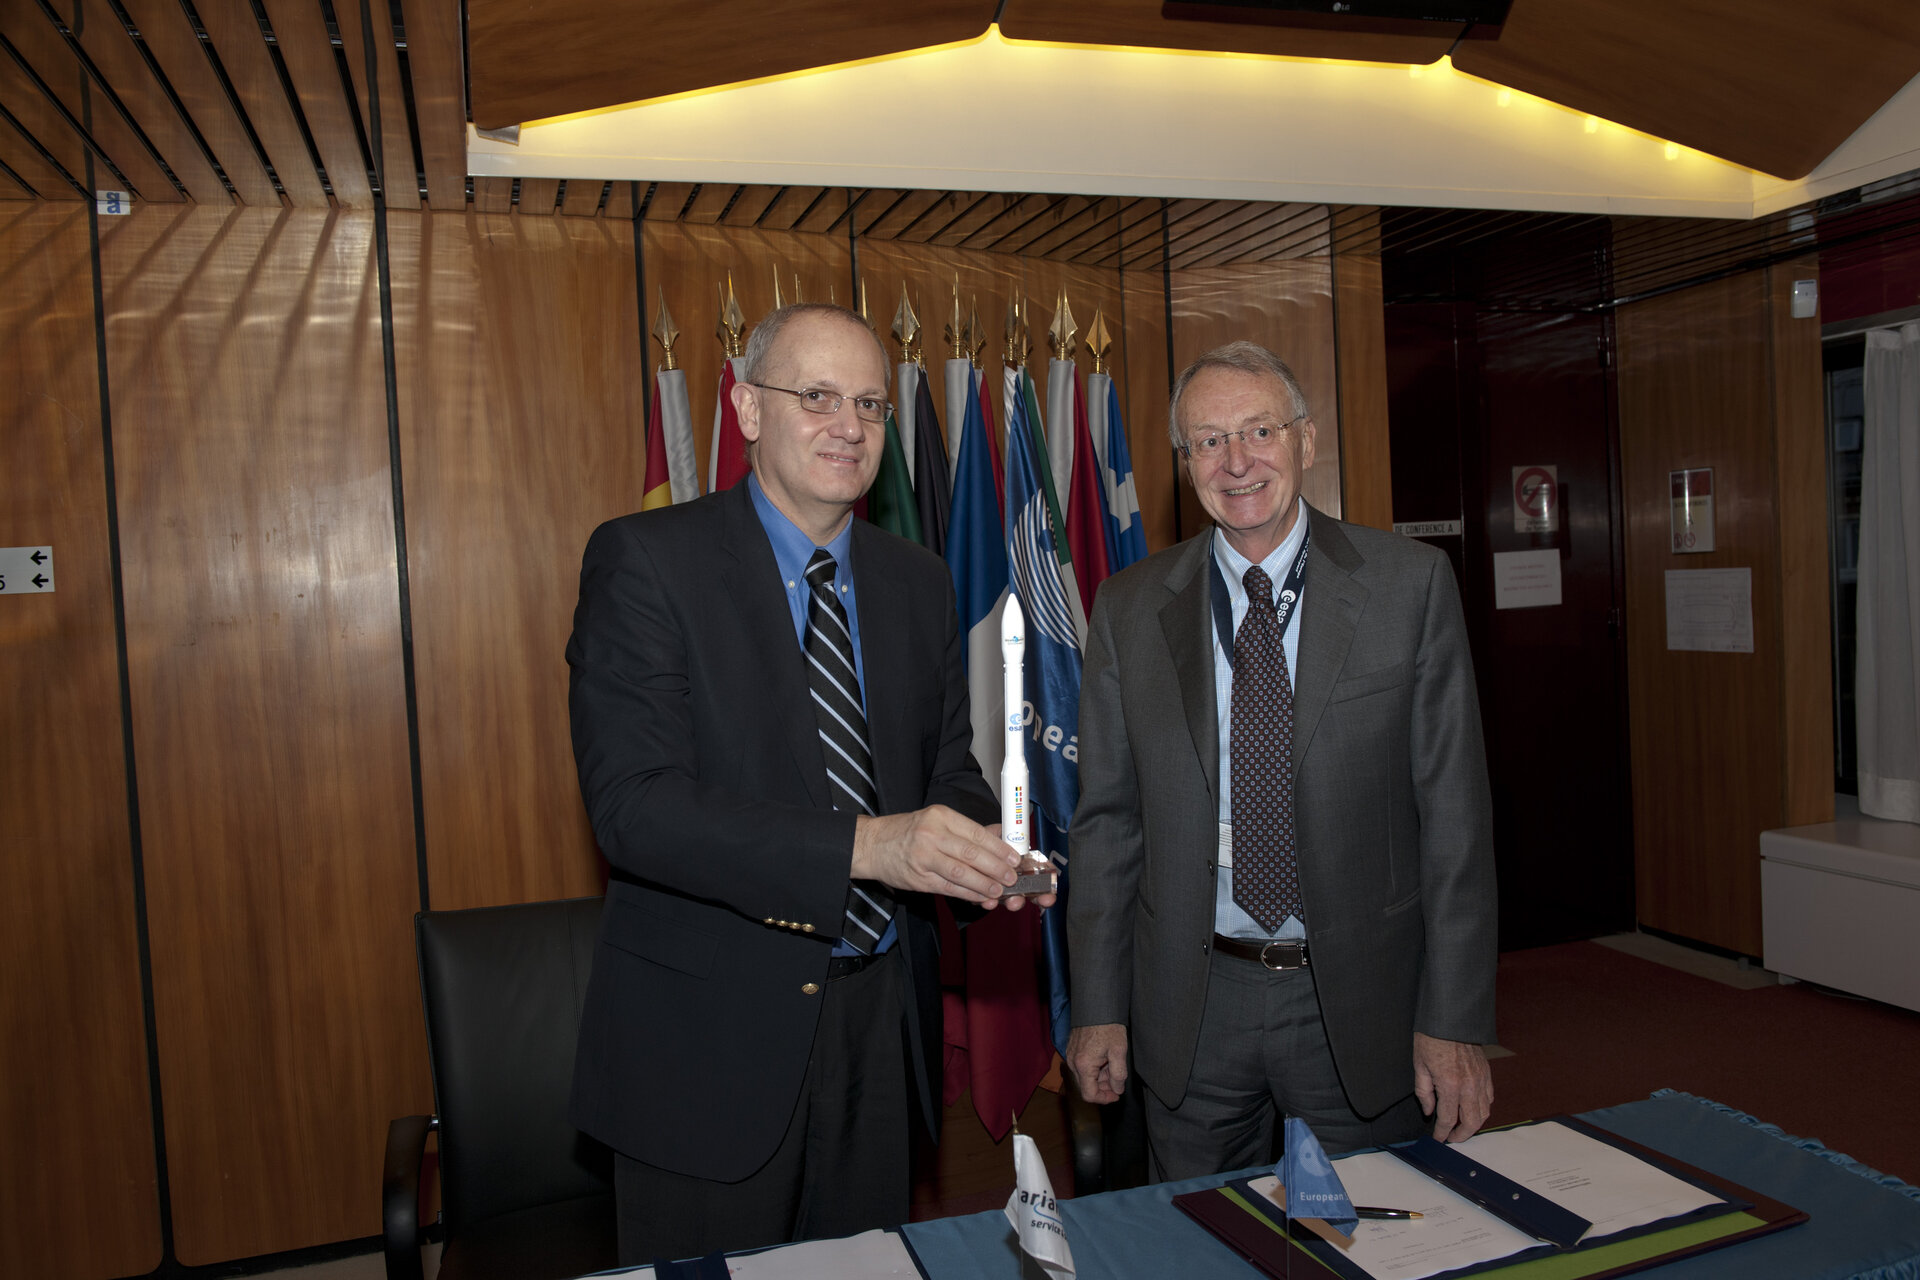 Jean-Yves Le Gall, CEO of Arianespace and Antonio Fabrizi, ESA Director of Launchers